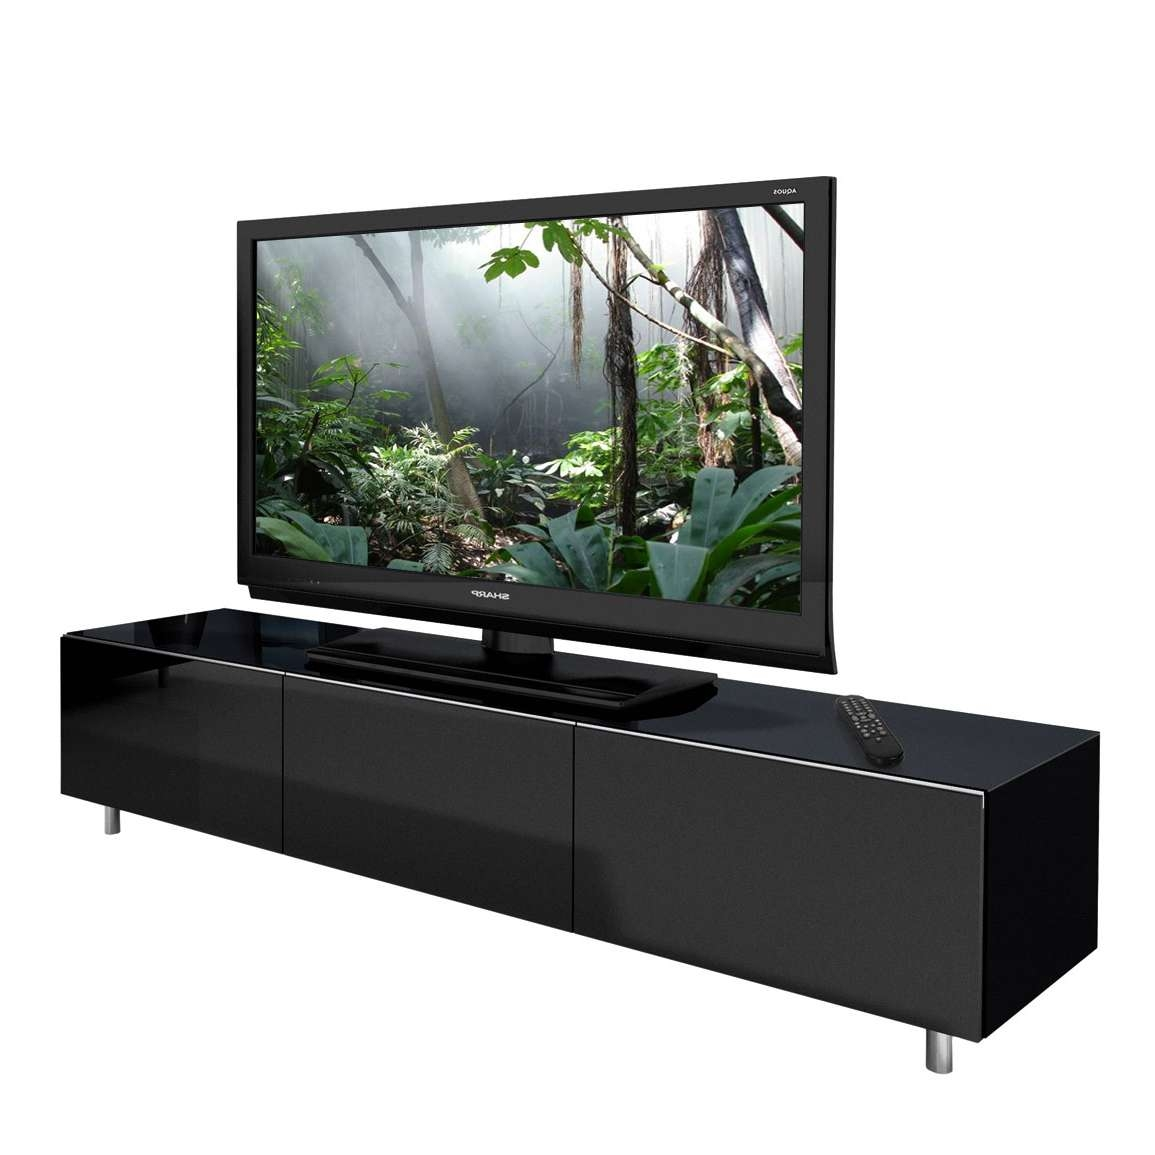 Just Racks Jrl1650 Gloss Black Tv Cabinet – Black Tv Stands In Long Low Tv Stands (View 5 of 15)